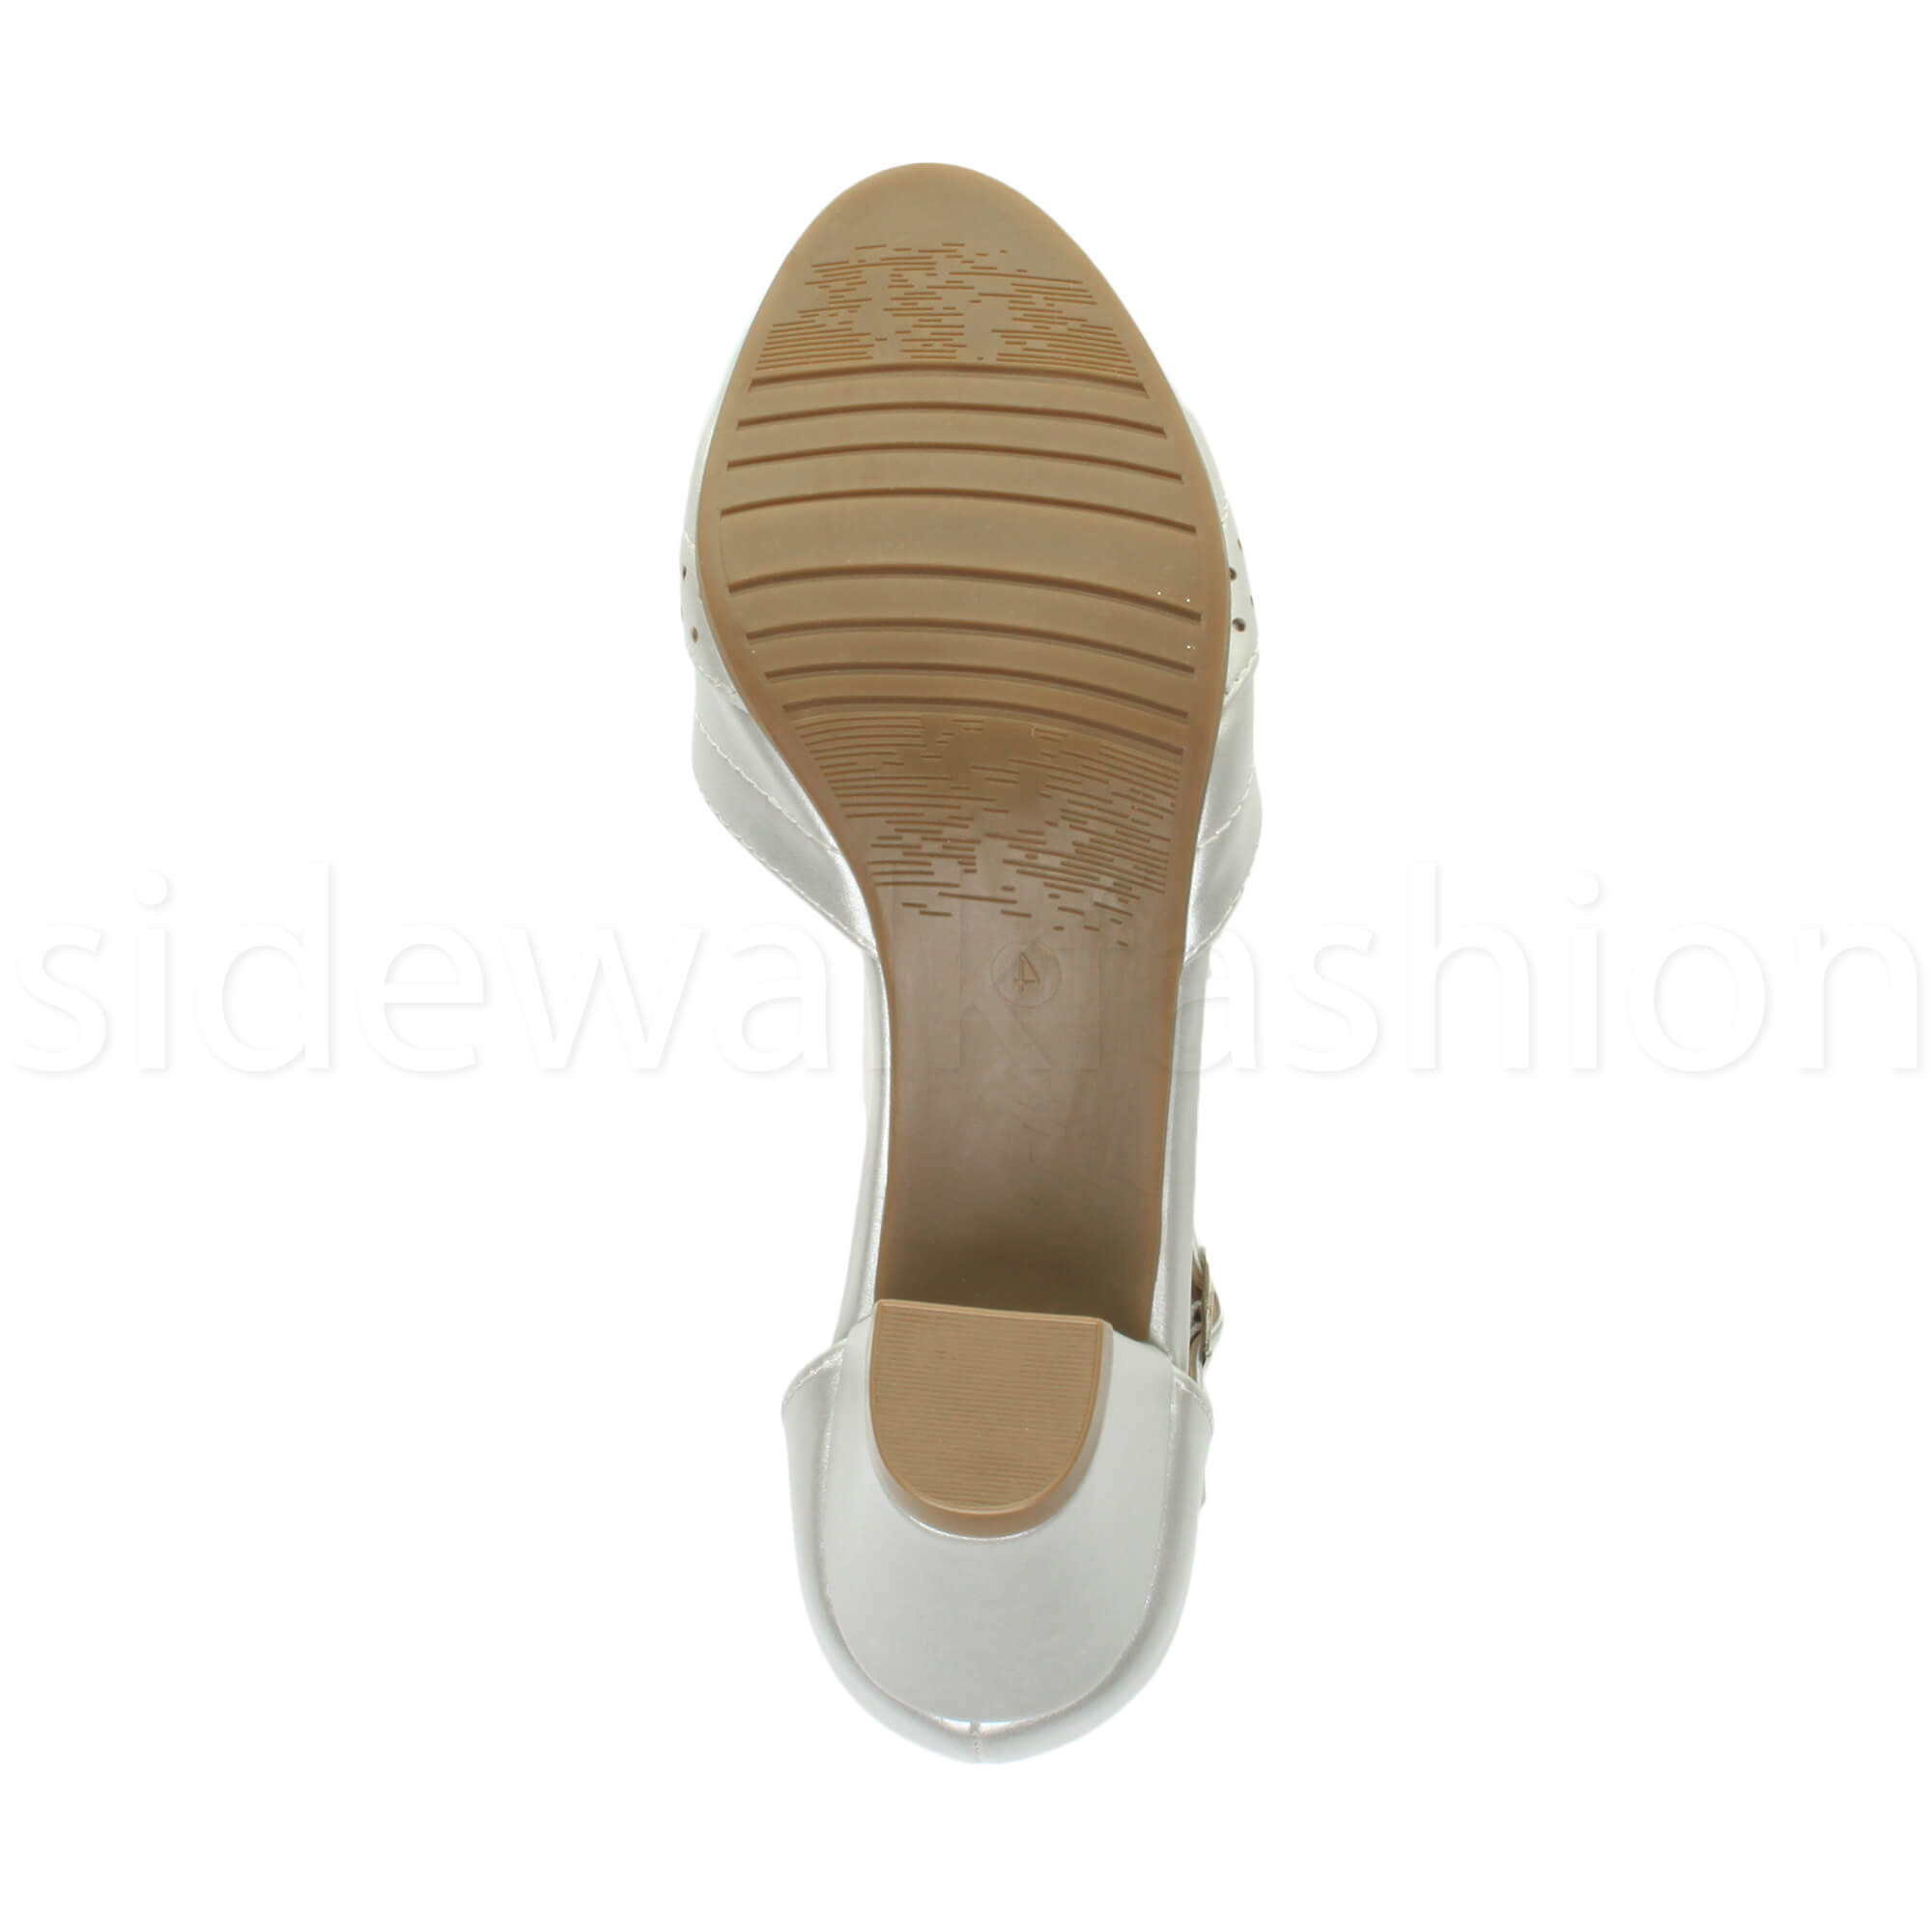 Womens-ladies-block-low-mid-heel-smart-work-Mary-Jane-T-bar-brogue-court-shoes thumbnail 71